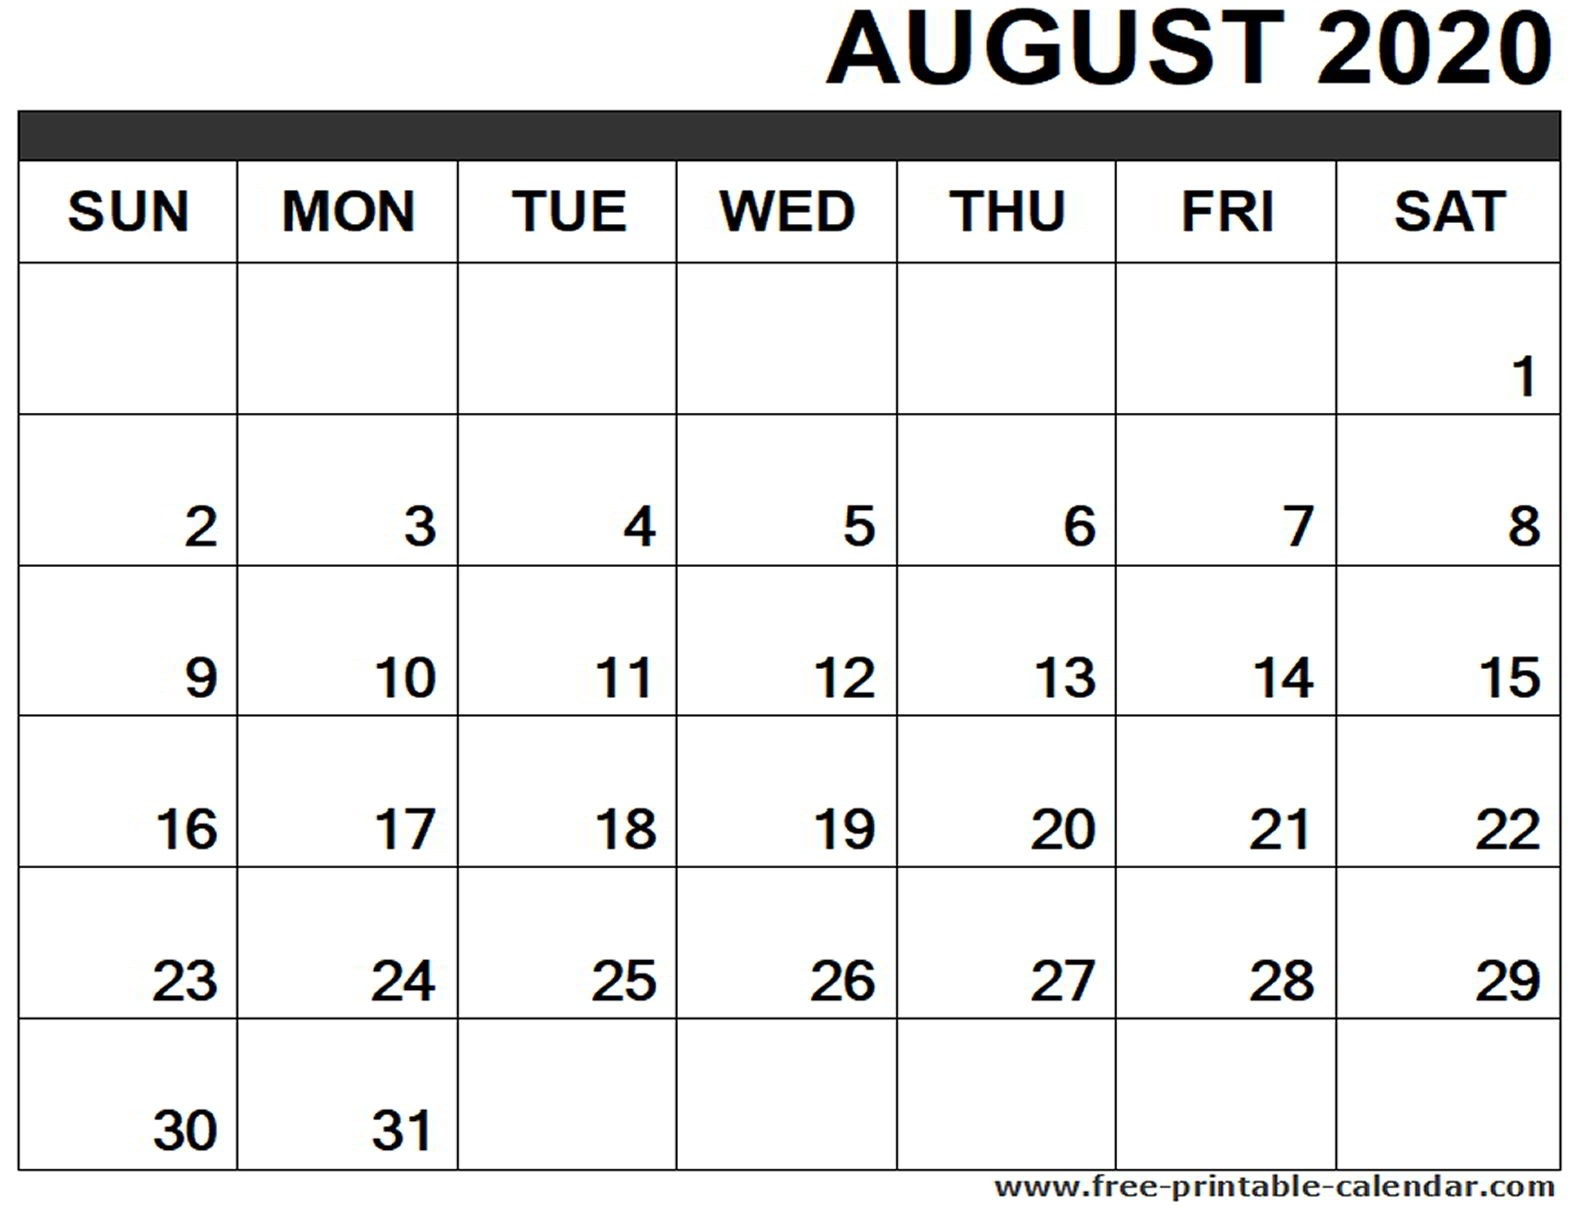 August 2020 Calendar Printable - Free-Printable-Calendar-Monthly Calendar July August 2020